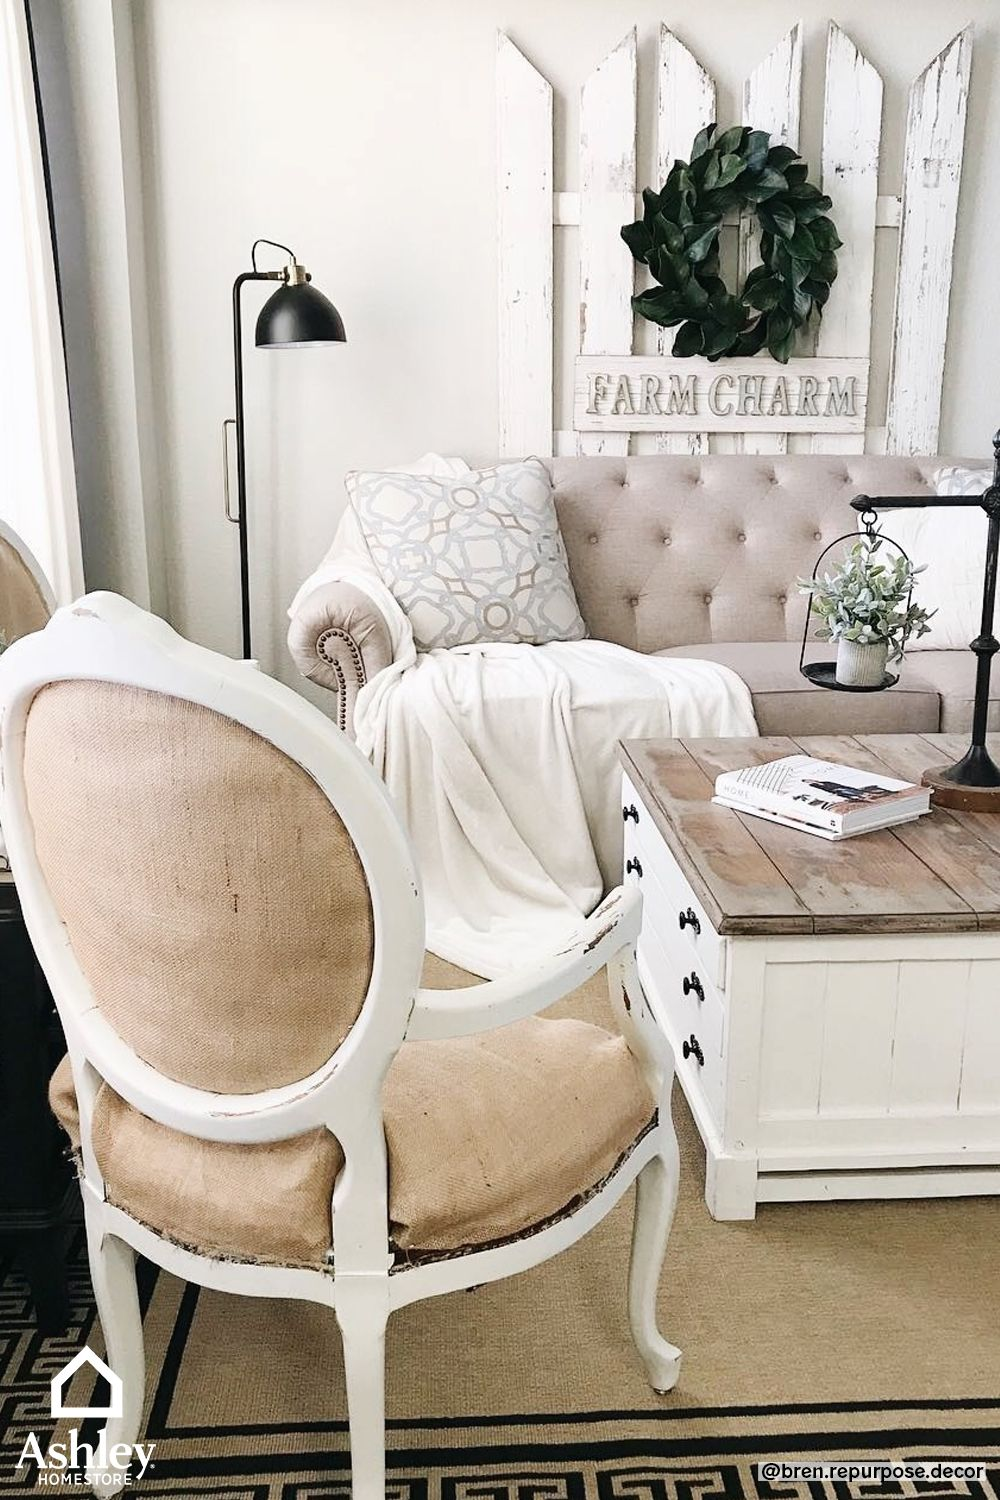 Pin by Jeanette Dillard on Dream home ideas | White